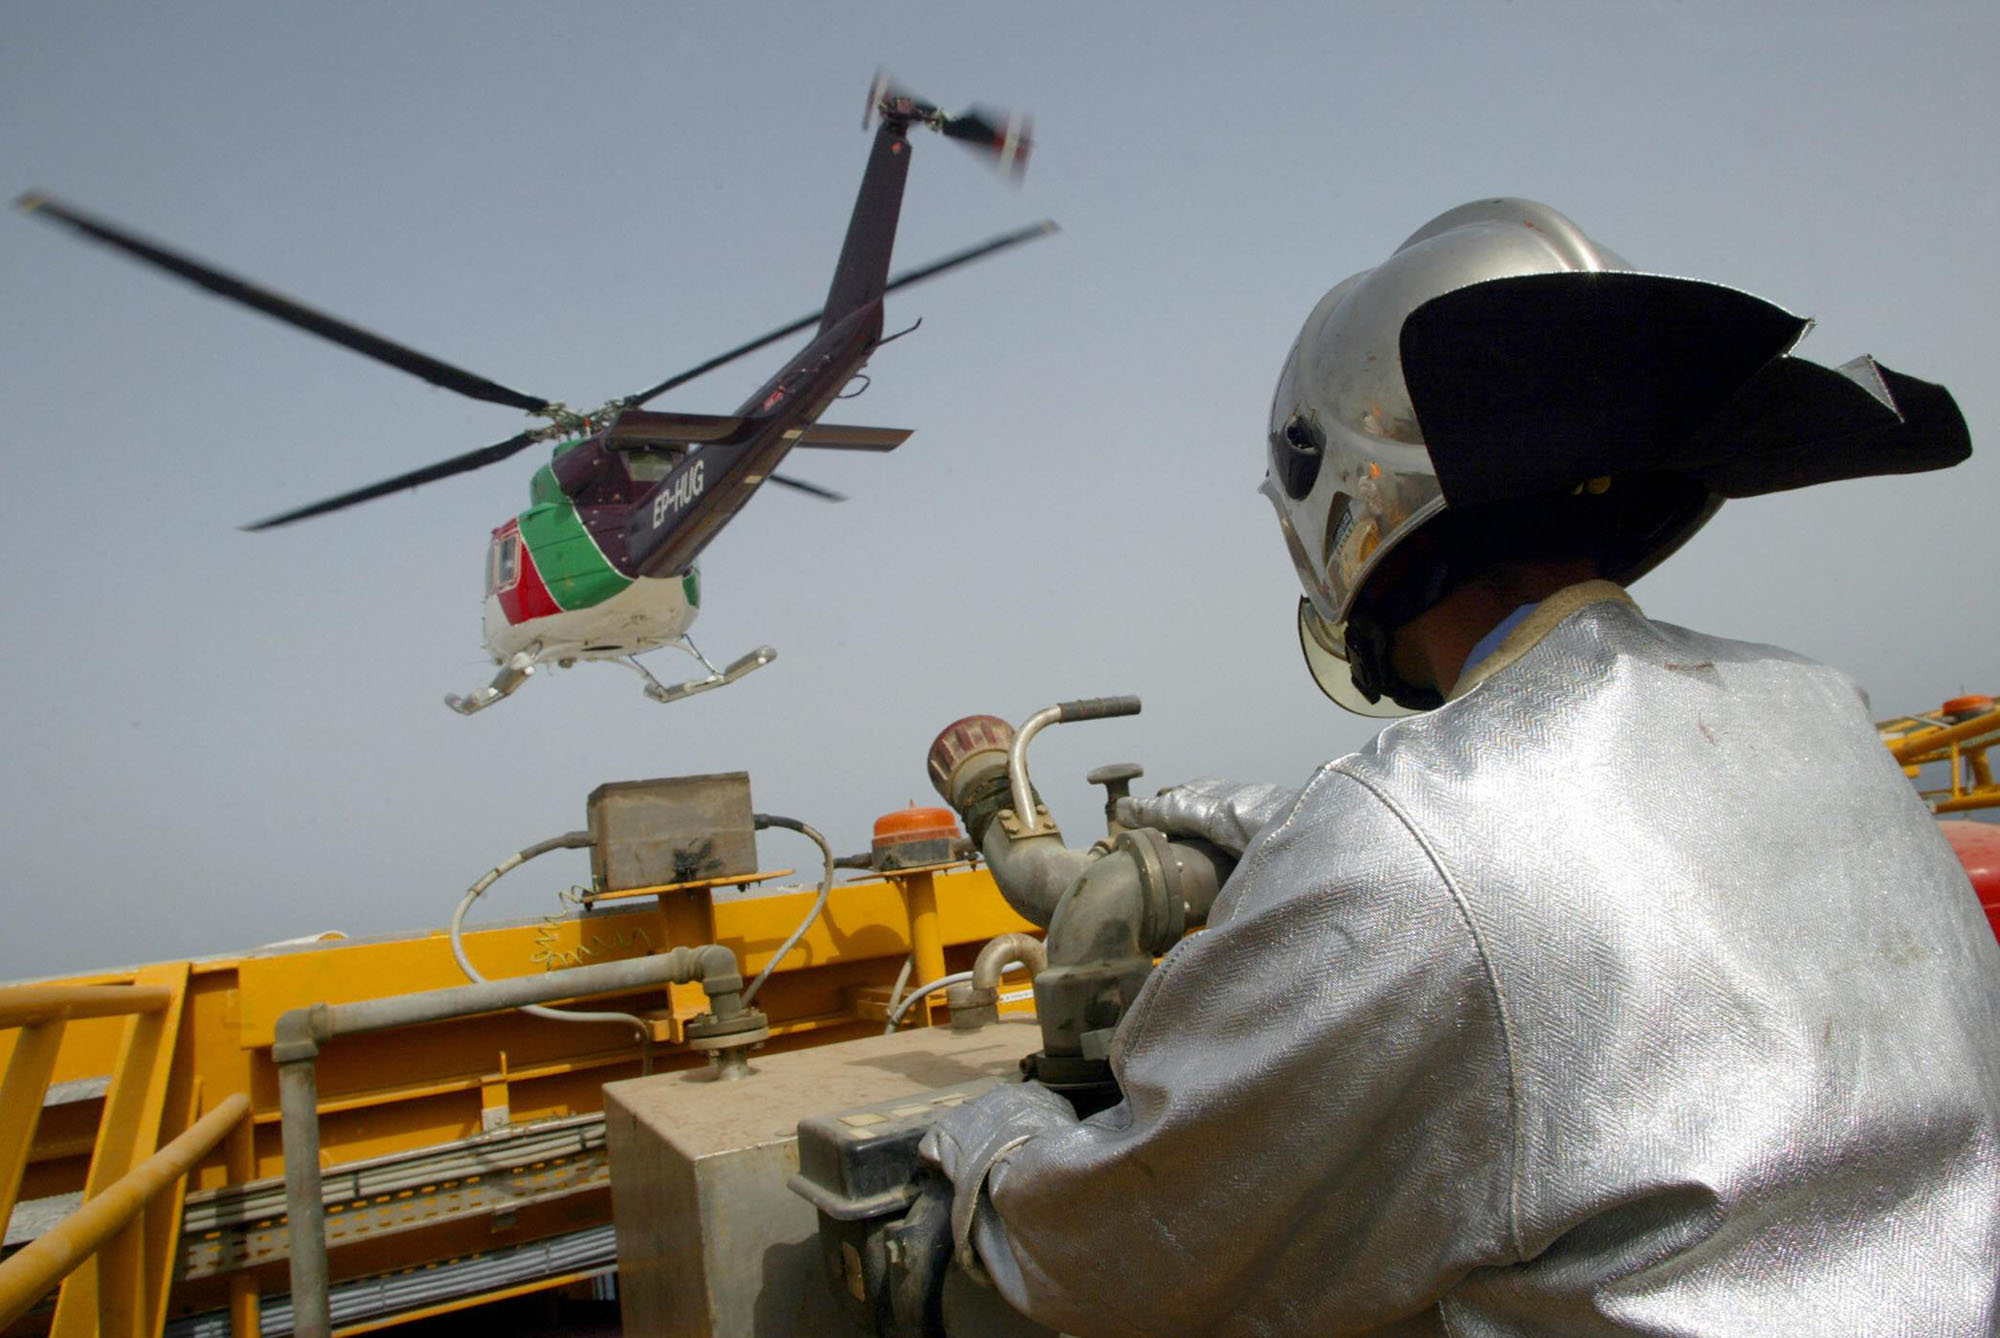 A technician works as a helicopter lands at an Iranian oil platform in the Persian Gulf in 2004. Iran appears poised for a fifth month to sell more oil than the average it is permitted to export under an interim nuclear deal with six world powers, according to observers.